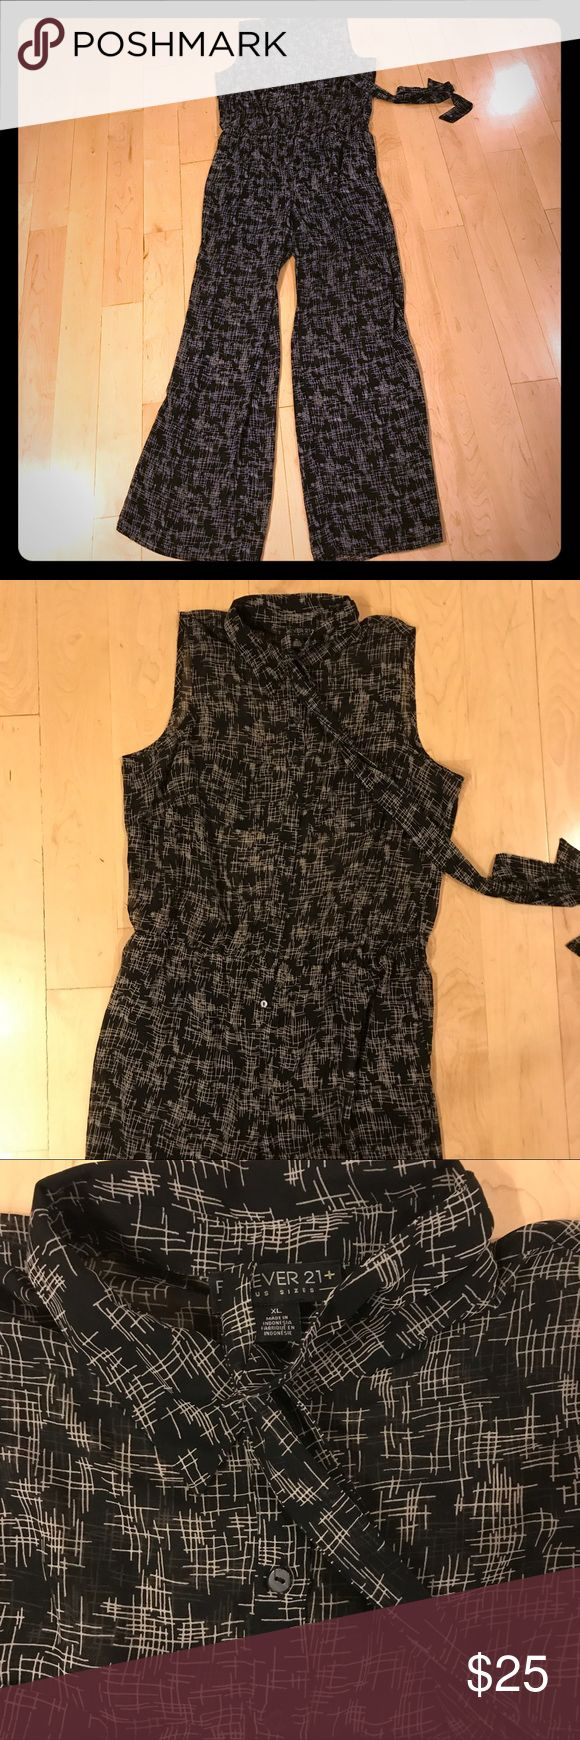 Forever 21+ black and white jumpsuit size XL Forever 21+ black and white jumpsuit in size XL. Black and white pattern fabric is chiffon, jumpsuit is unlined at the bodice and has black knit shorts lining at the trouser portion. Buttons down the front and has elastic waist and a fabric waist belt tie. Bust:  42 inches. Waist: 33-37 inches. Length: 63 inches. Forever 21+ Pants Jumpsuits & Rompers